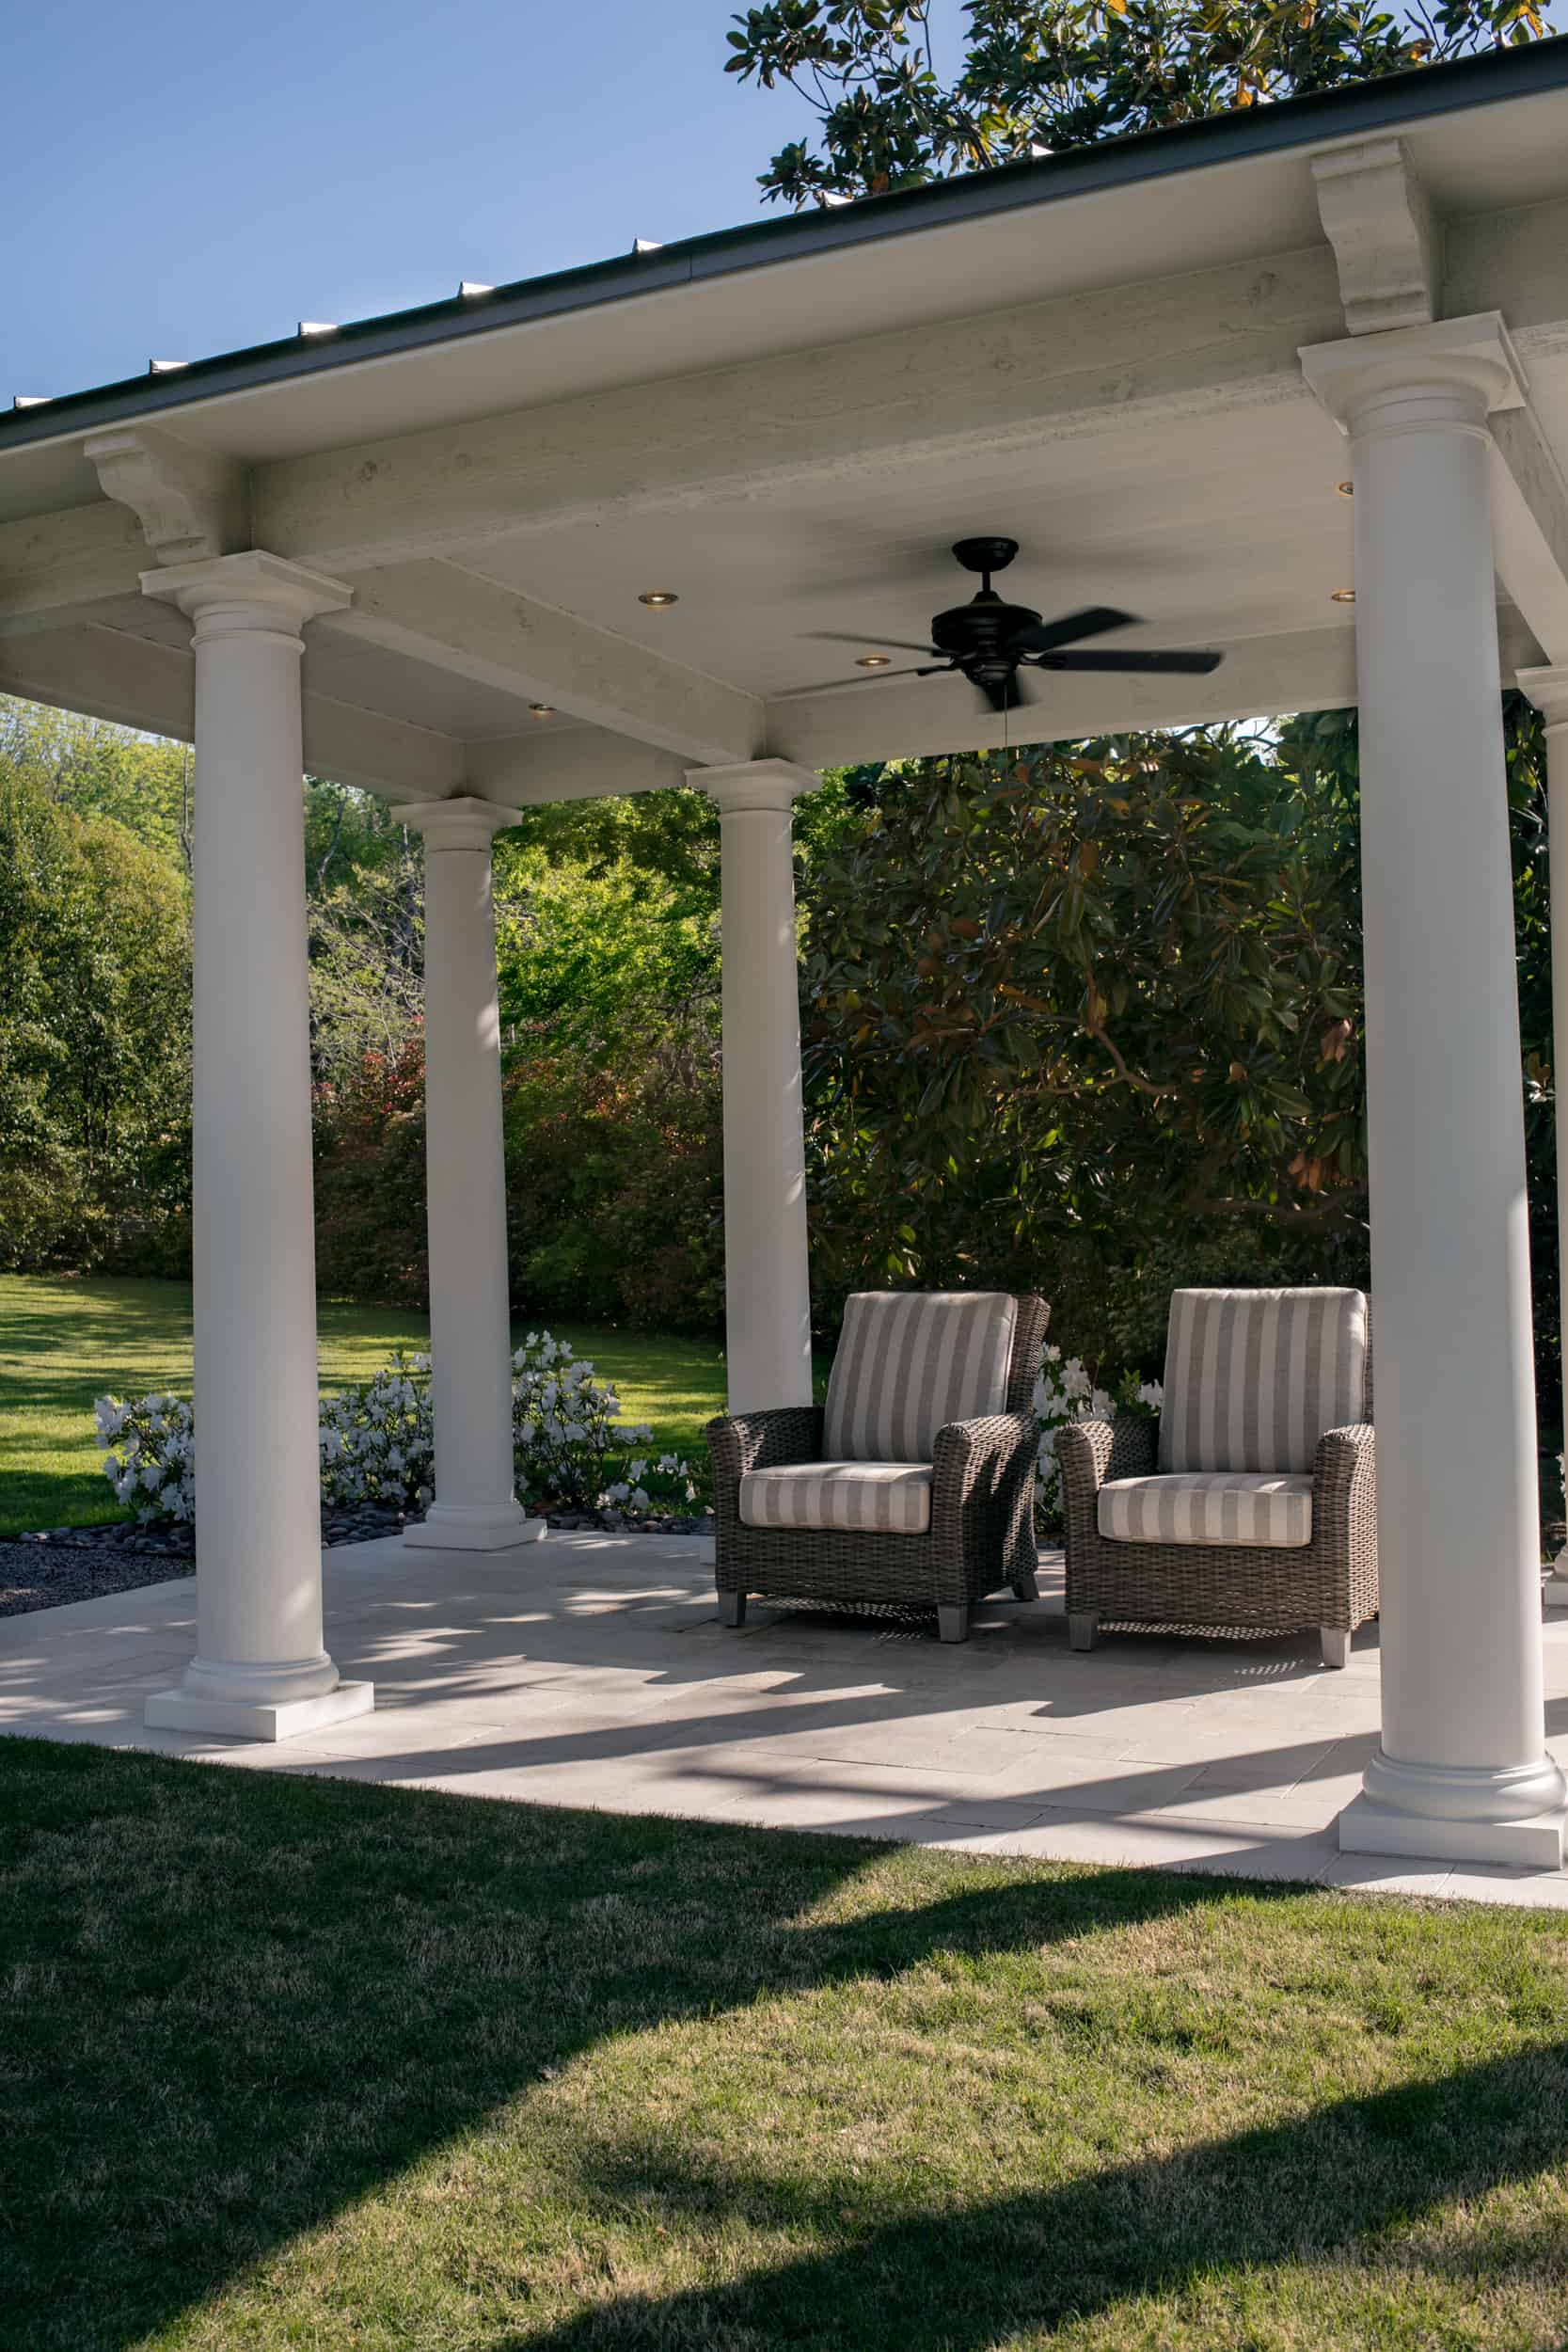 The Great Lawn pavilion includes wireless controlled integrated LED lighting, ceiling fan, and outdoor cushioned chairs. The chairs are covered in Sunbrella fabric to prevent fading.